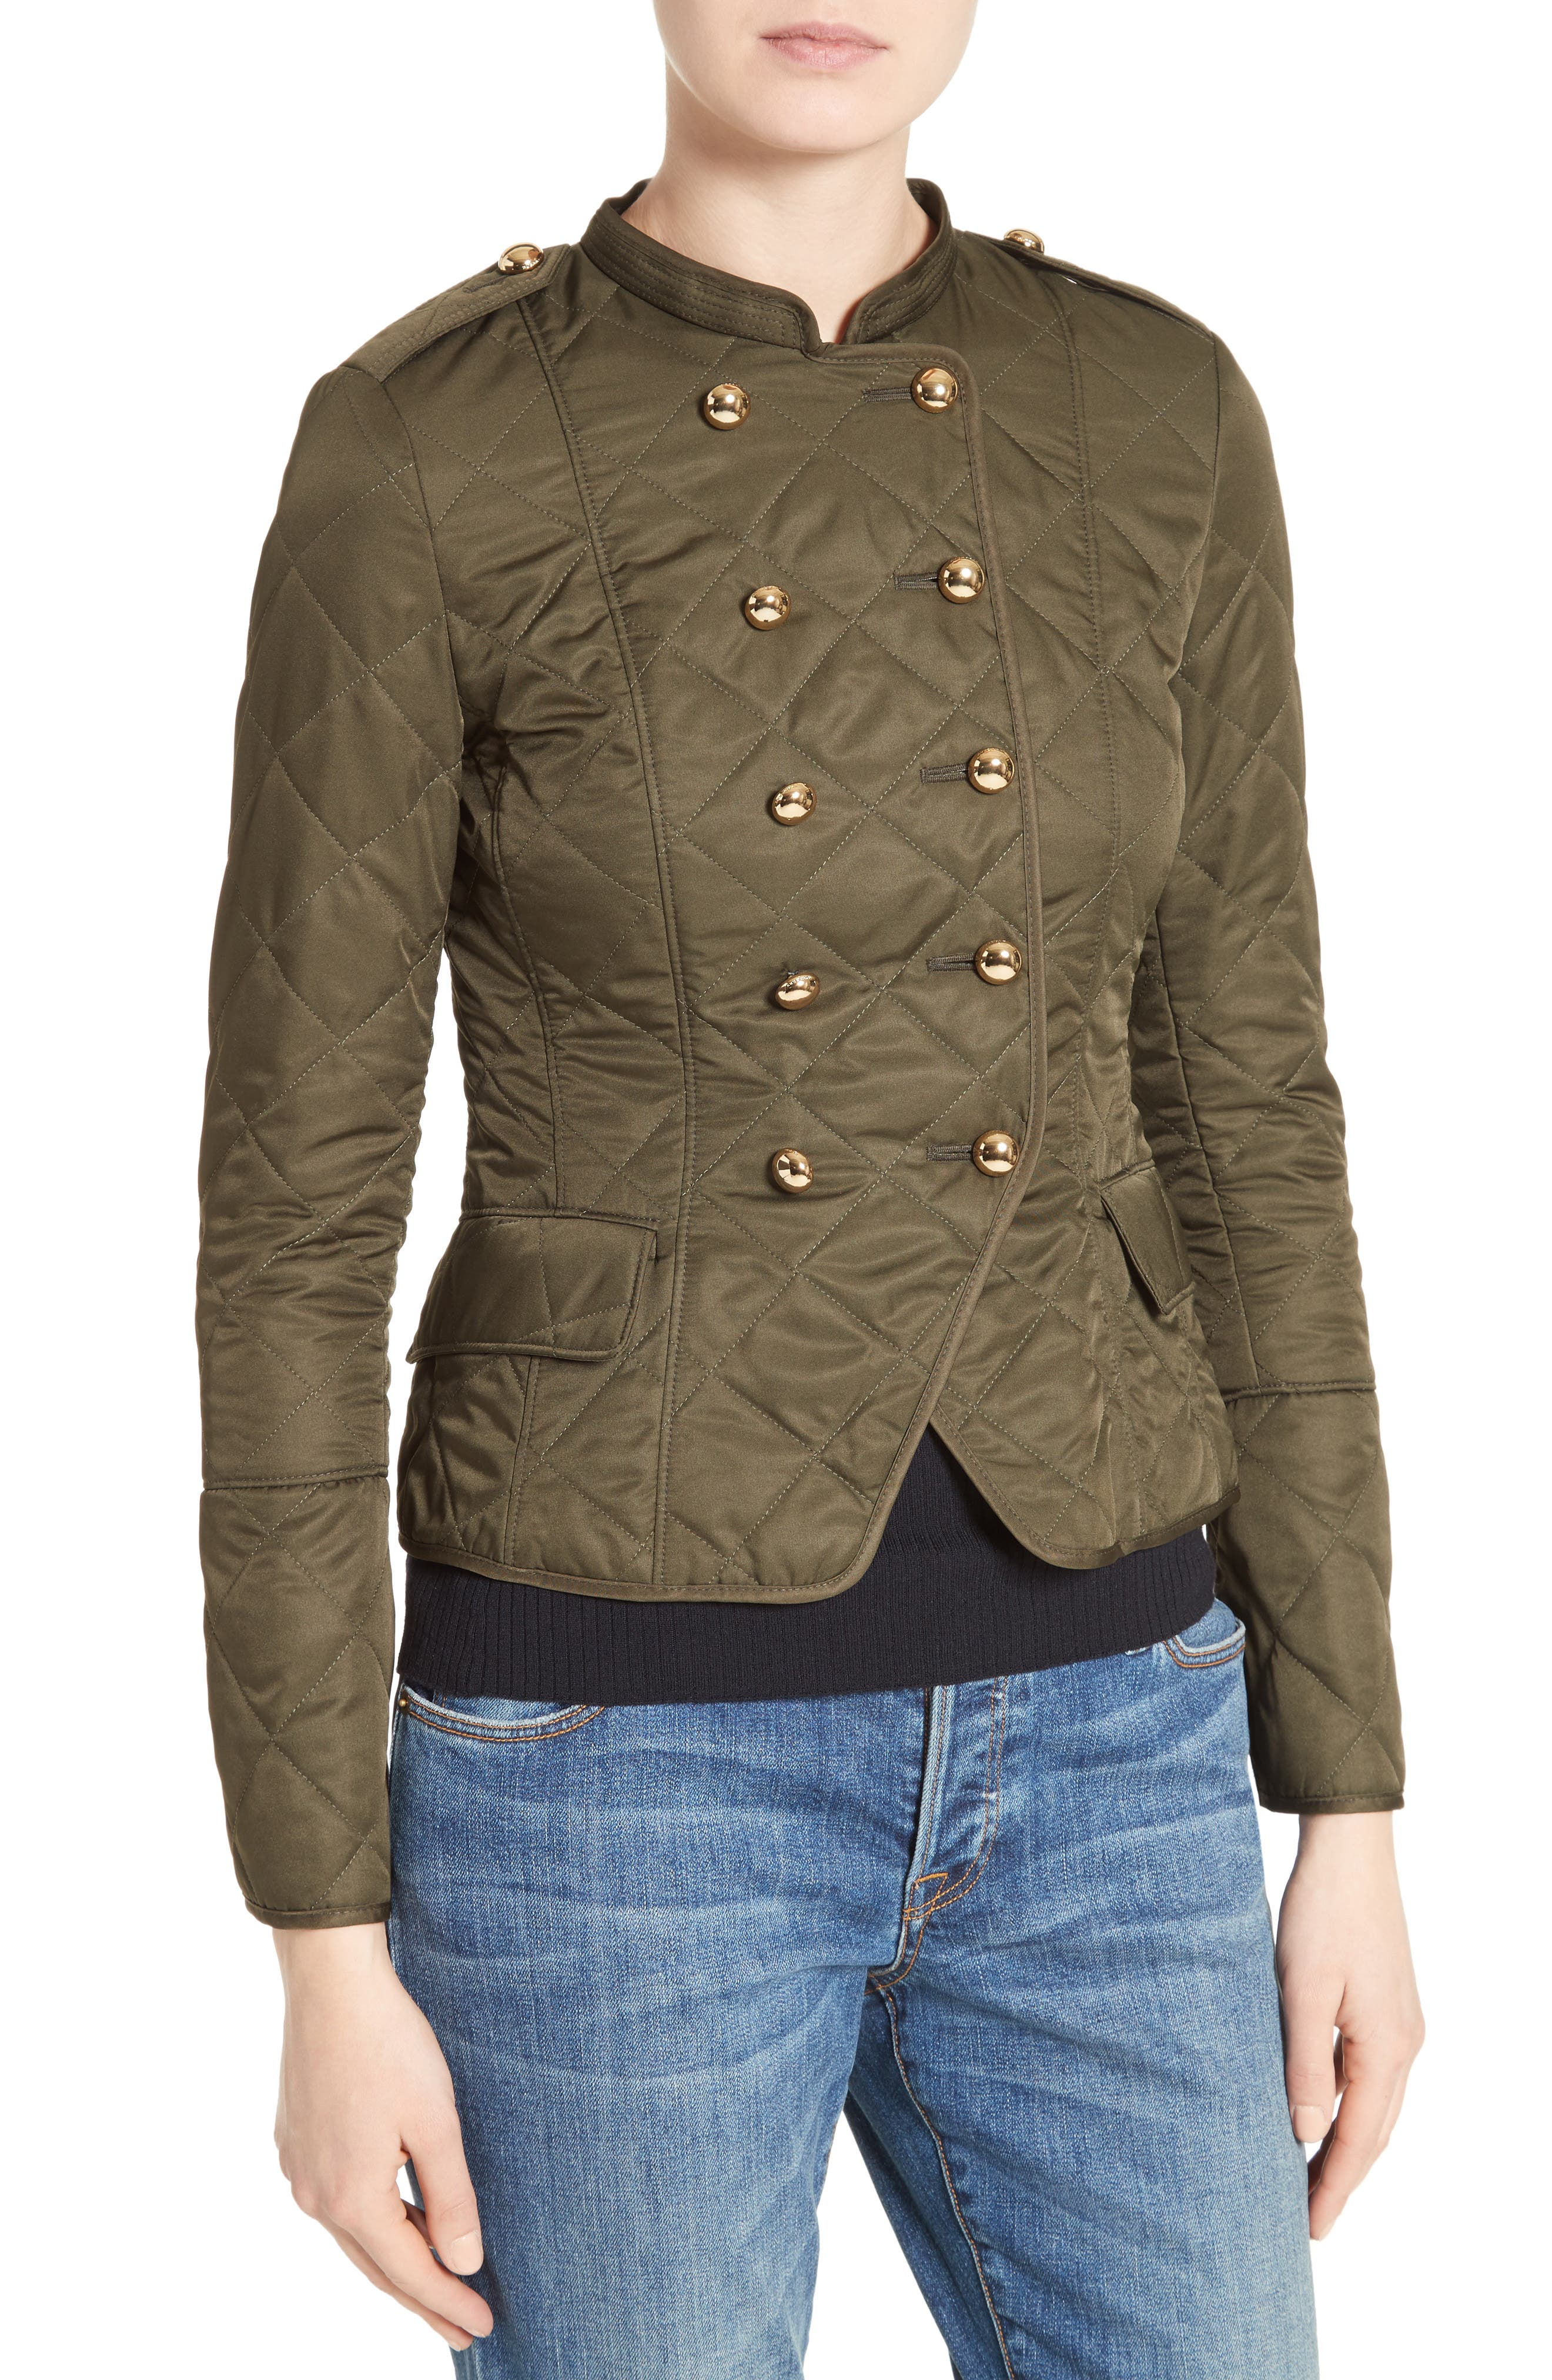 Boscastle Quilted Military Jacket,                             Alternate thumbnail 4, color,                             301